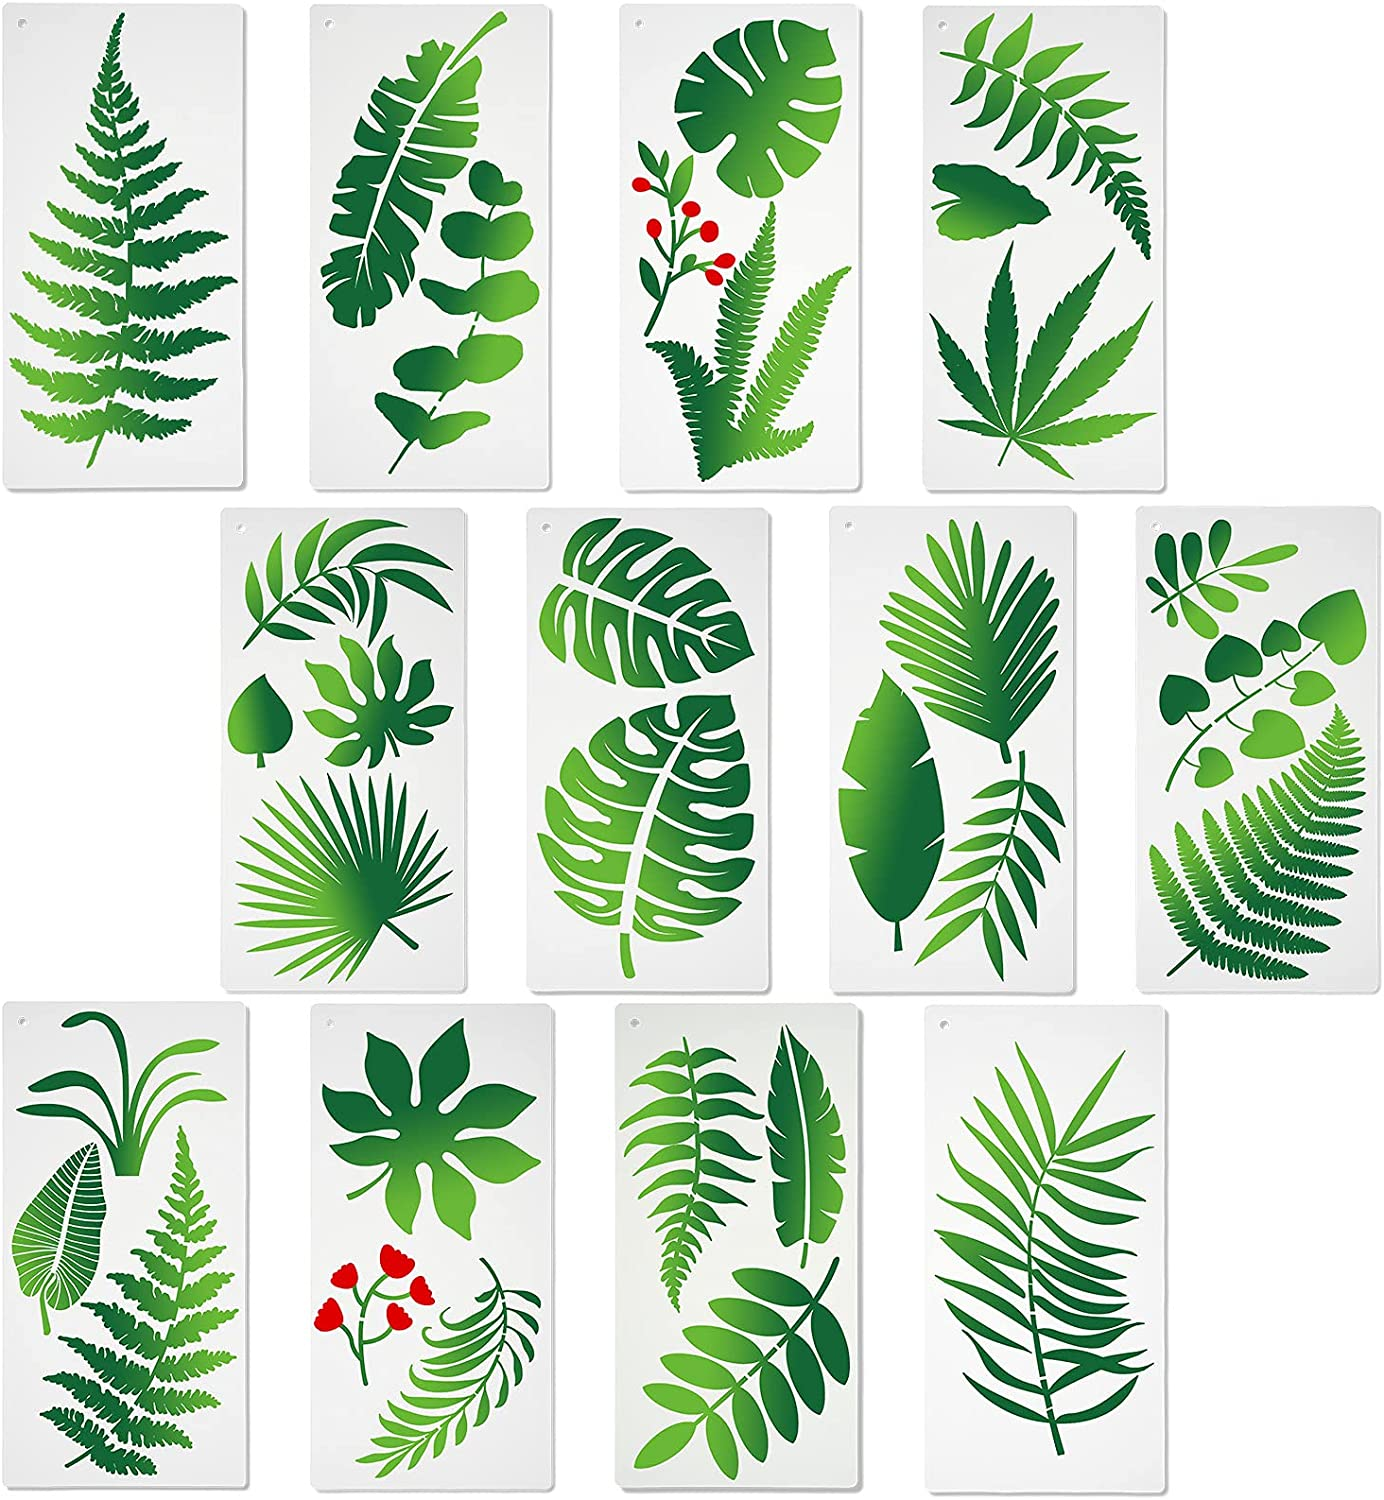 12 Pieces Leaf Art Stencils, Large Plastic Stencils on Crafts Home Decor Wall DIY Wood Sign for Printing Tropical Banana Template Fern Leaf Palm Botanical Leaves 13.78 x 5.9 inch